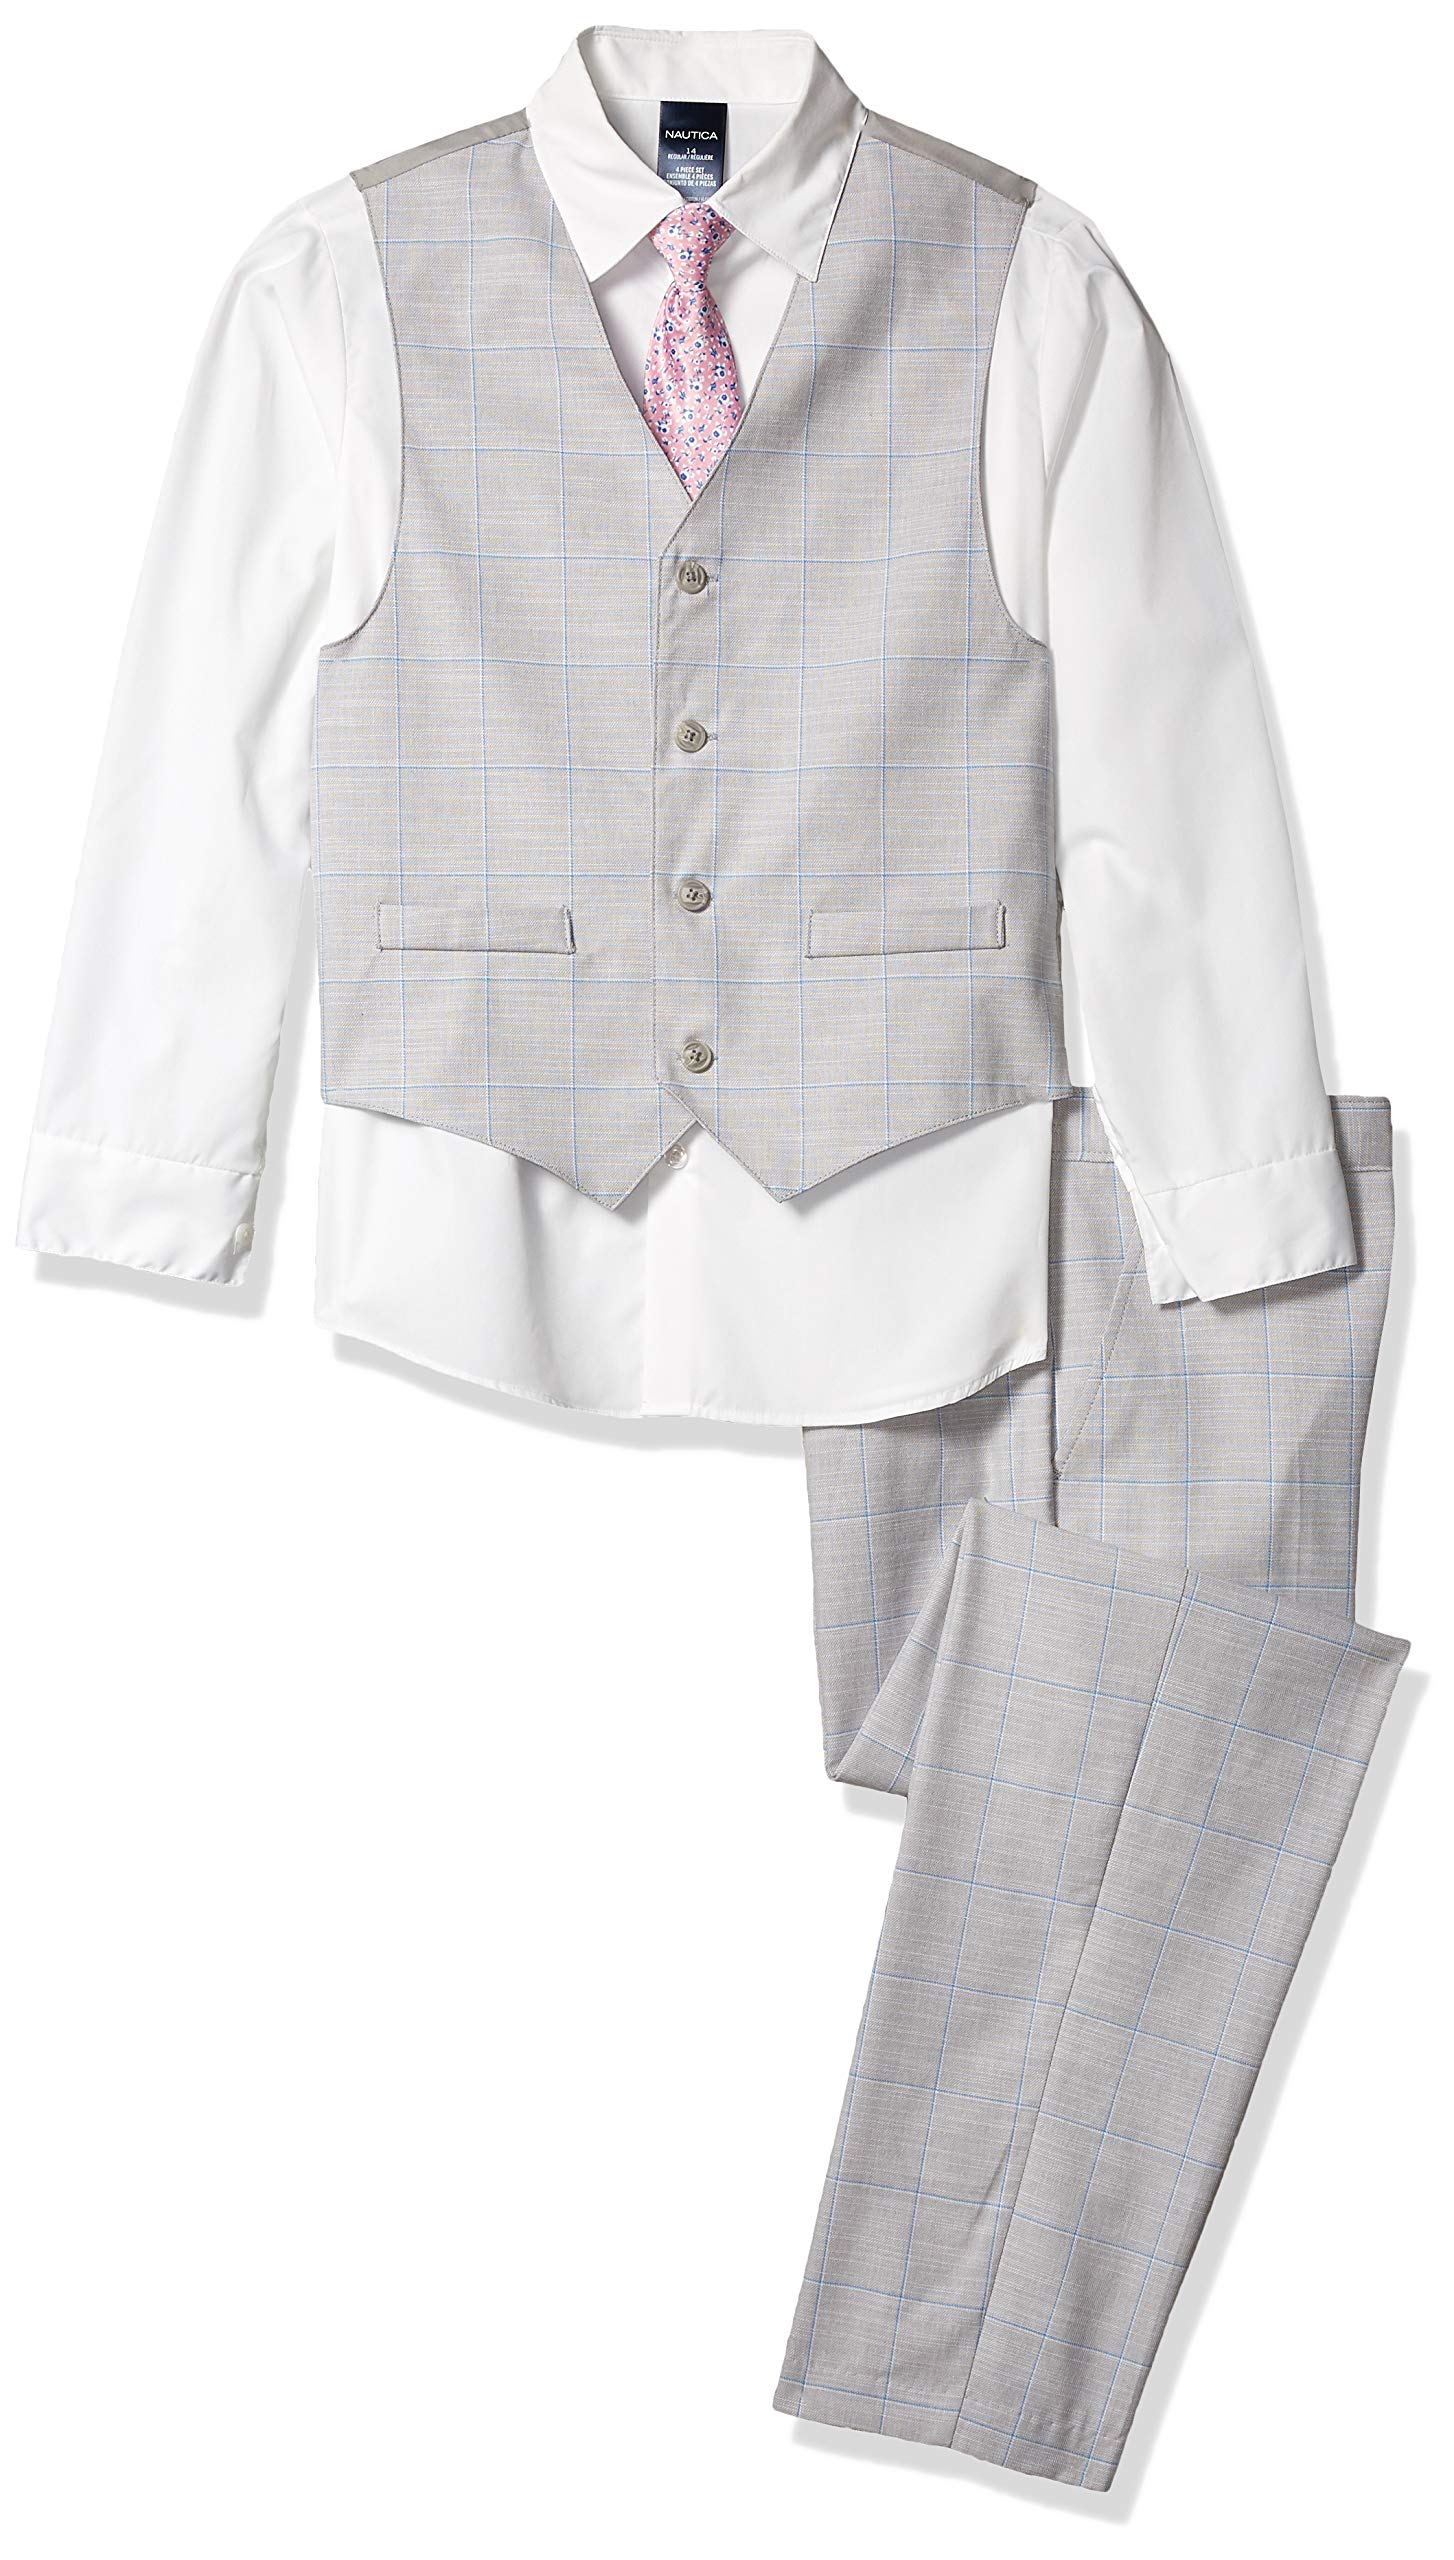 Nautica Boys' 4-Piece Vest Set with Dress Shirt, Tie, Vest, and Pants